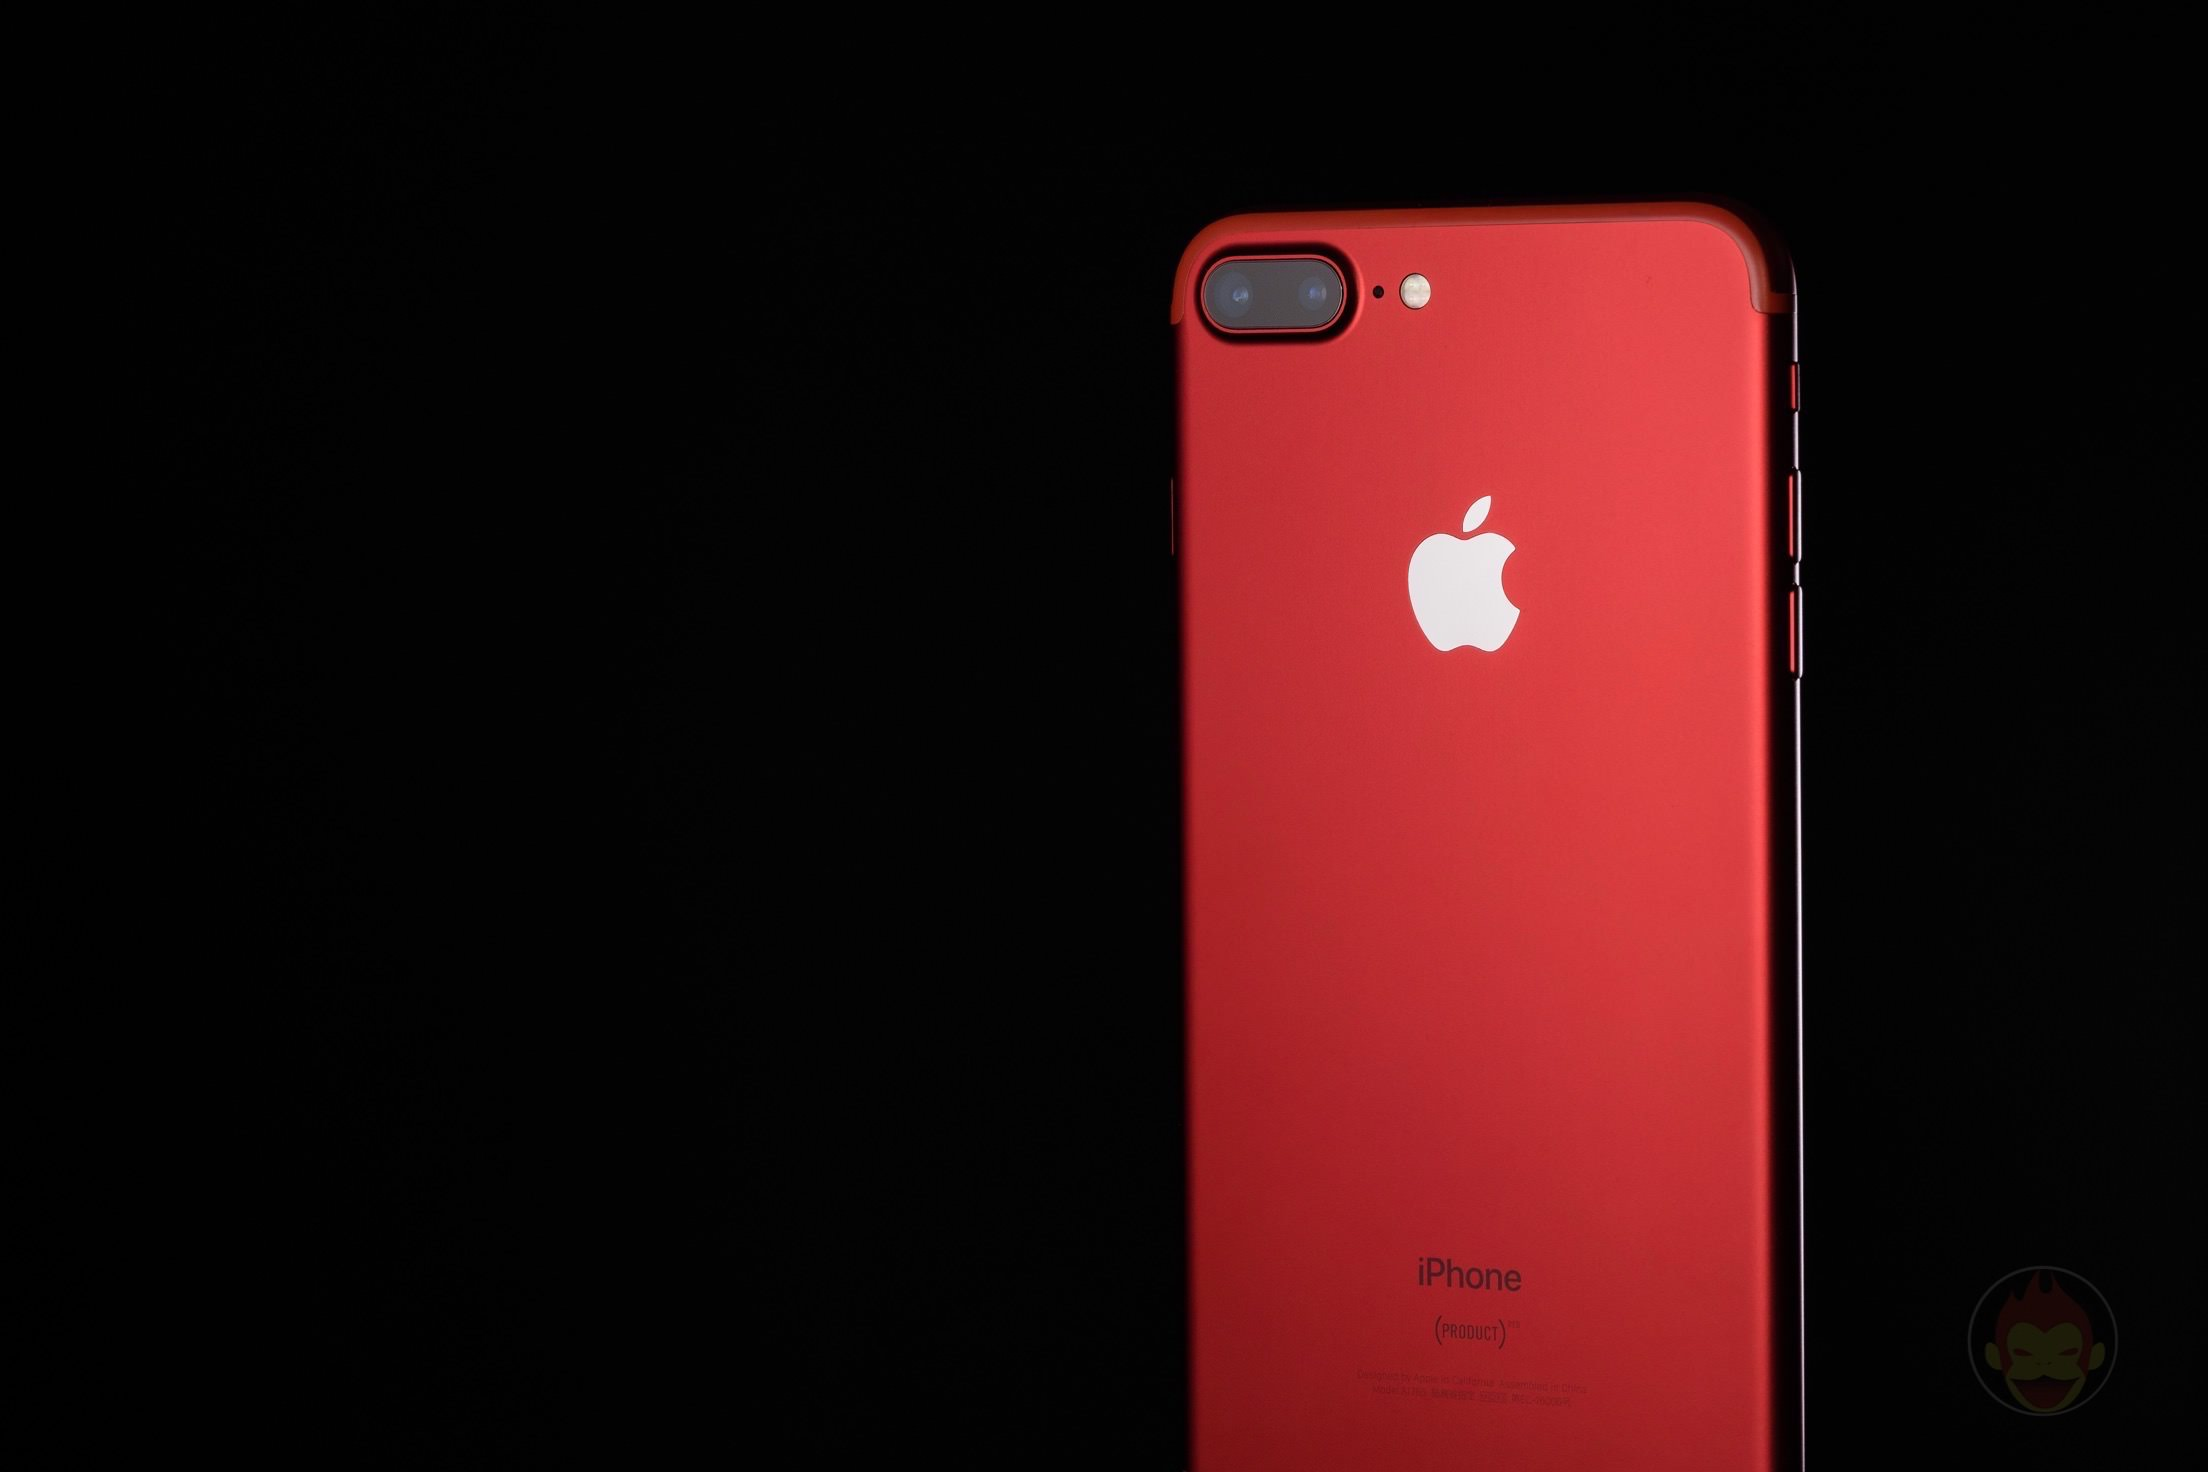 iPhone-7-Product-Red-Special-Edition-01.jpg